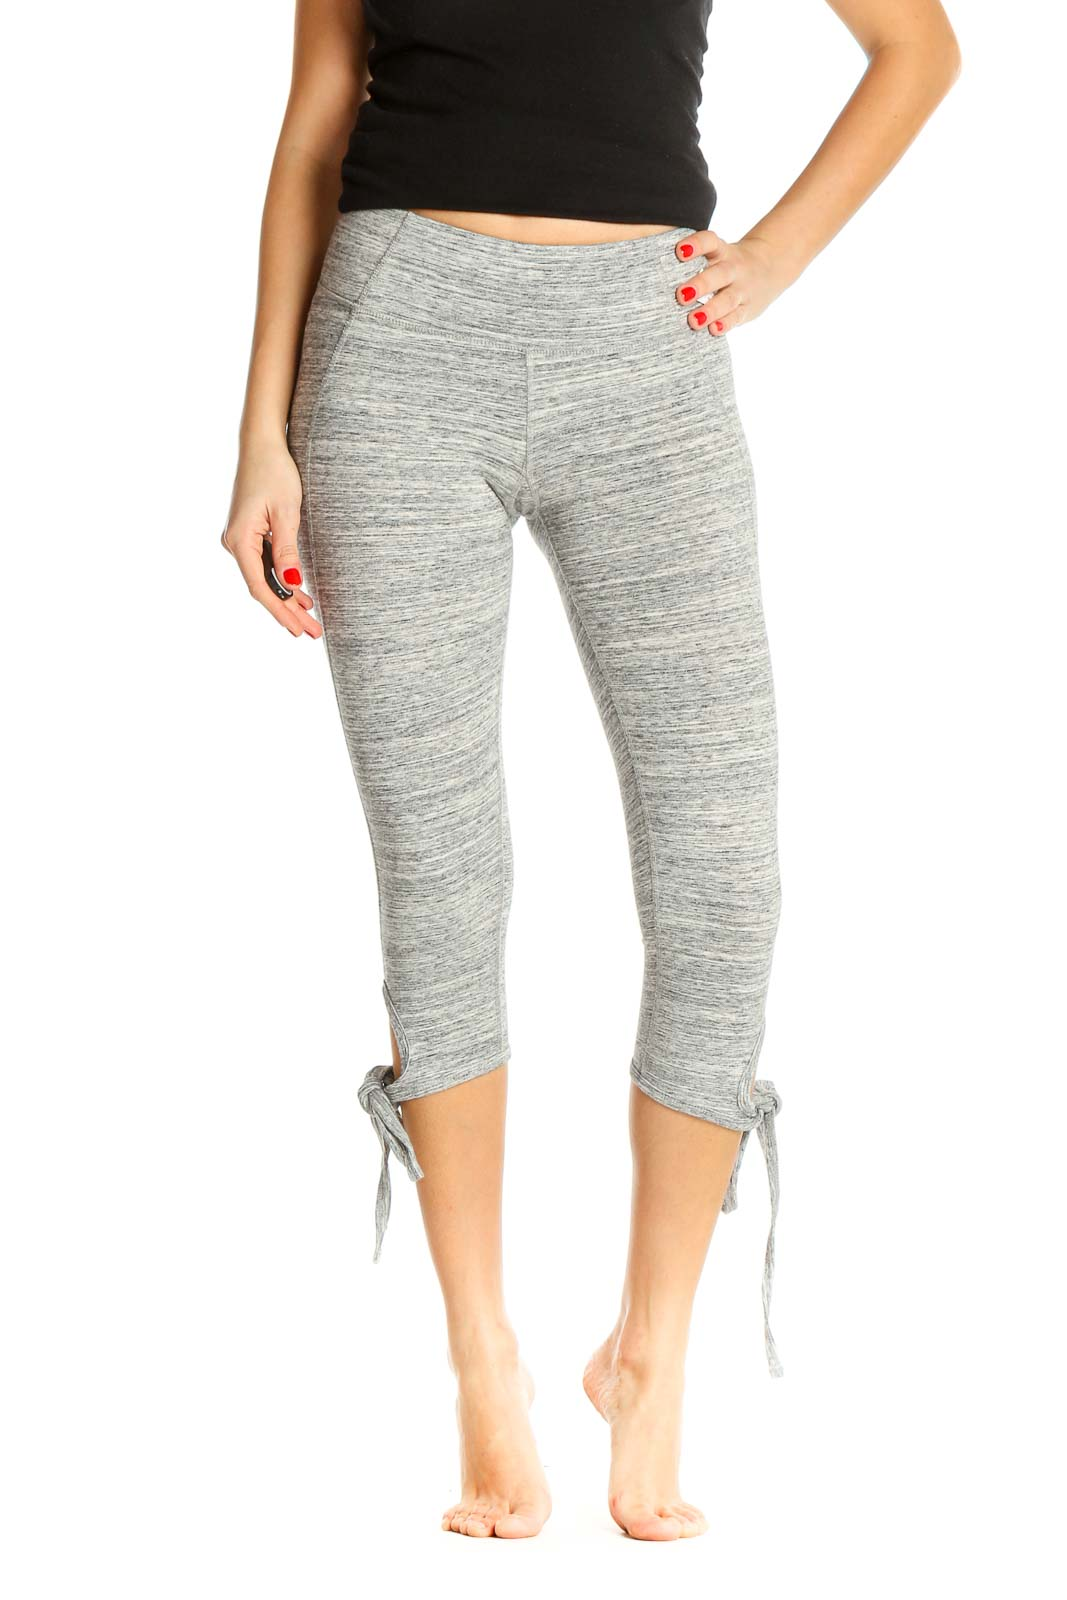 Gray Casual All Day Wear Leggings Front